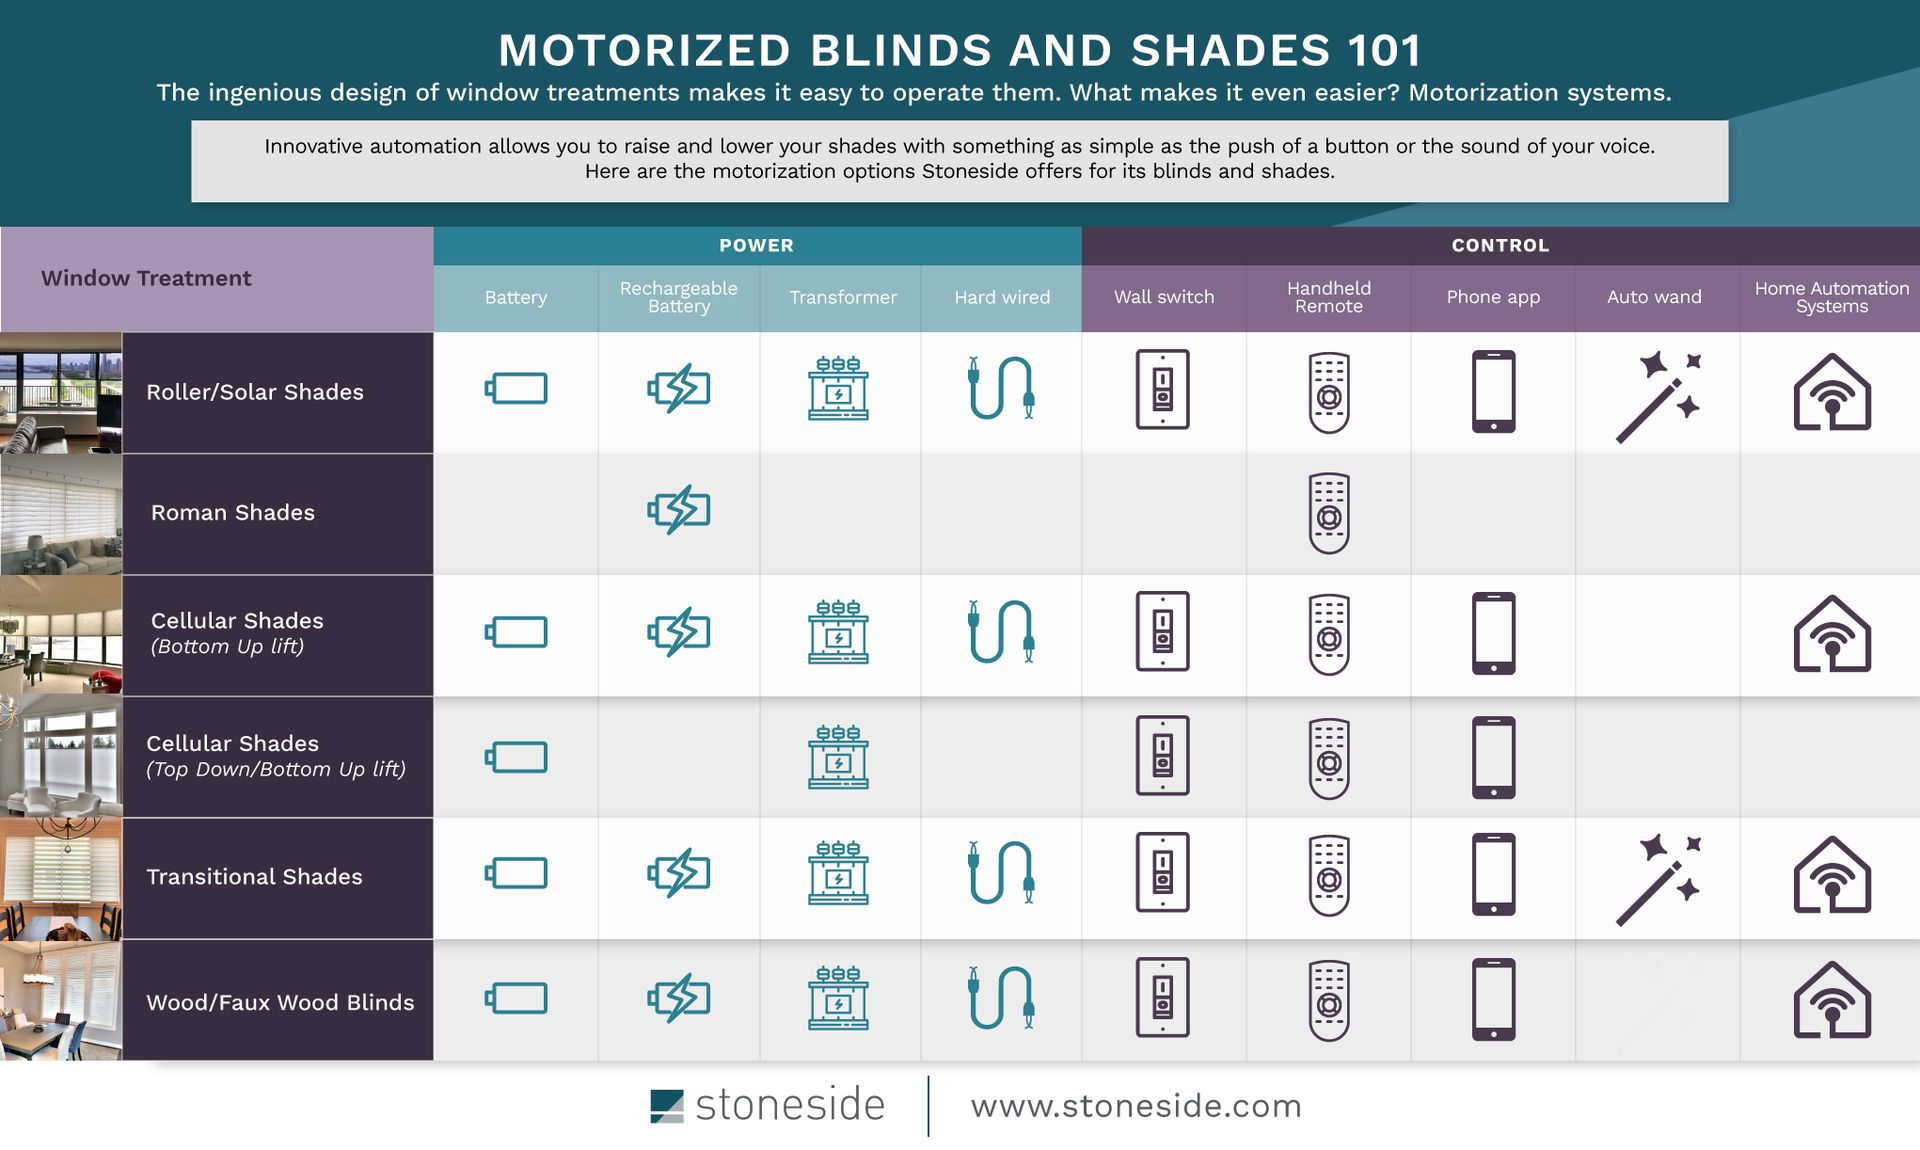 Motorized Blinds And Shades Automatic Remote Control Shades Stoneside